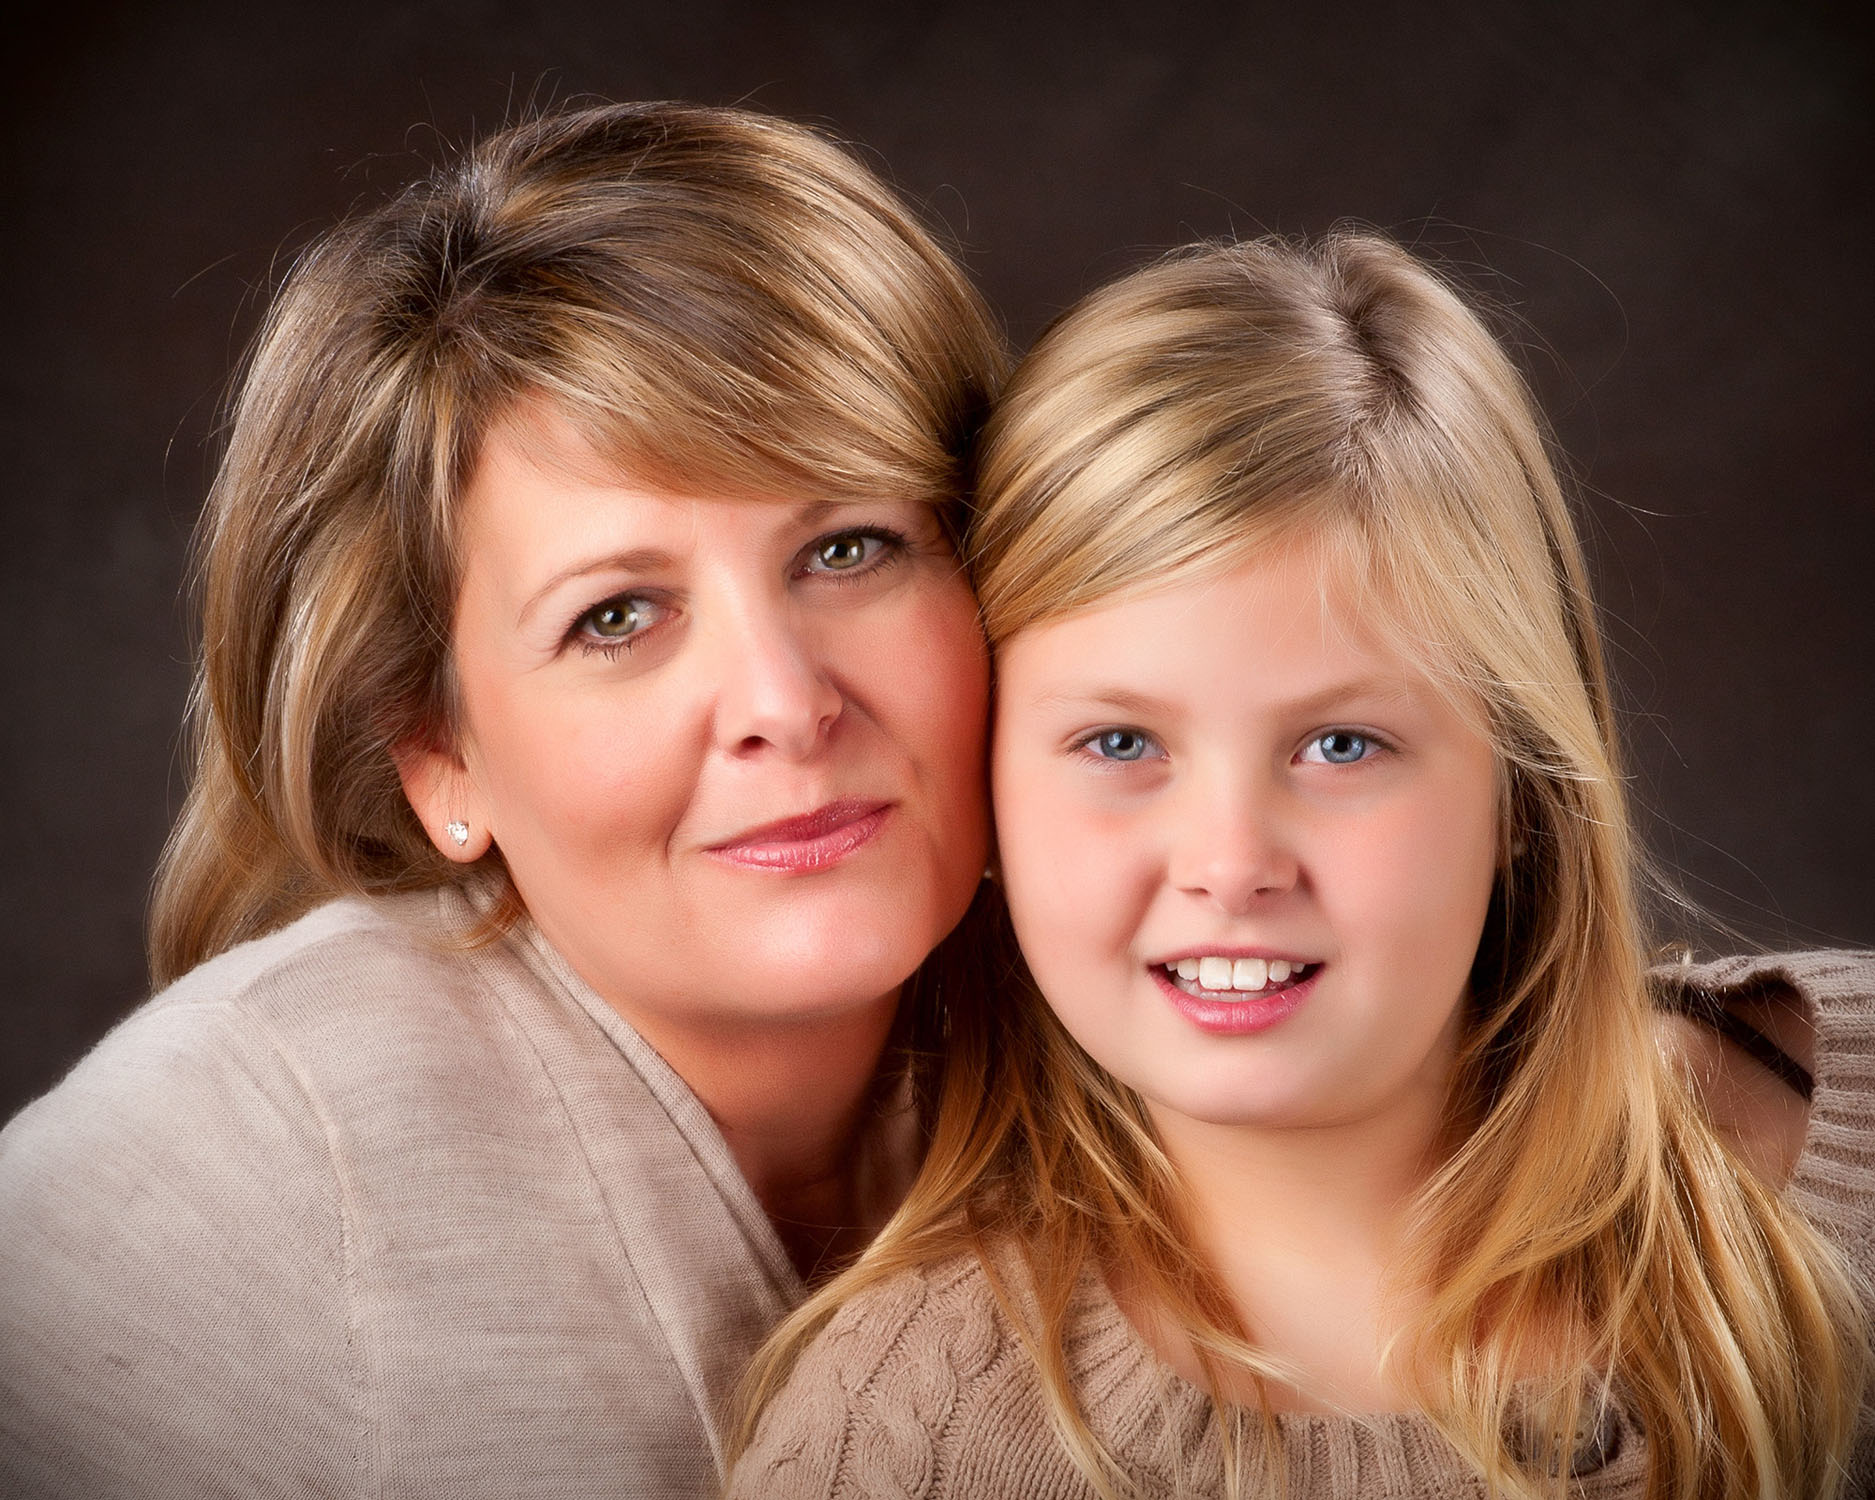 Mother and daughter portrait in studio in Maine